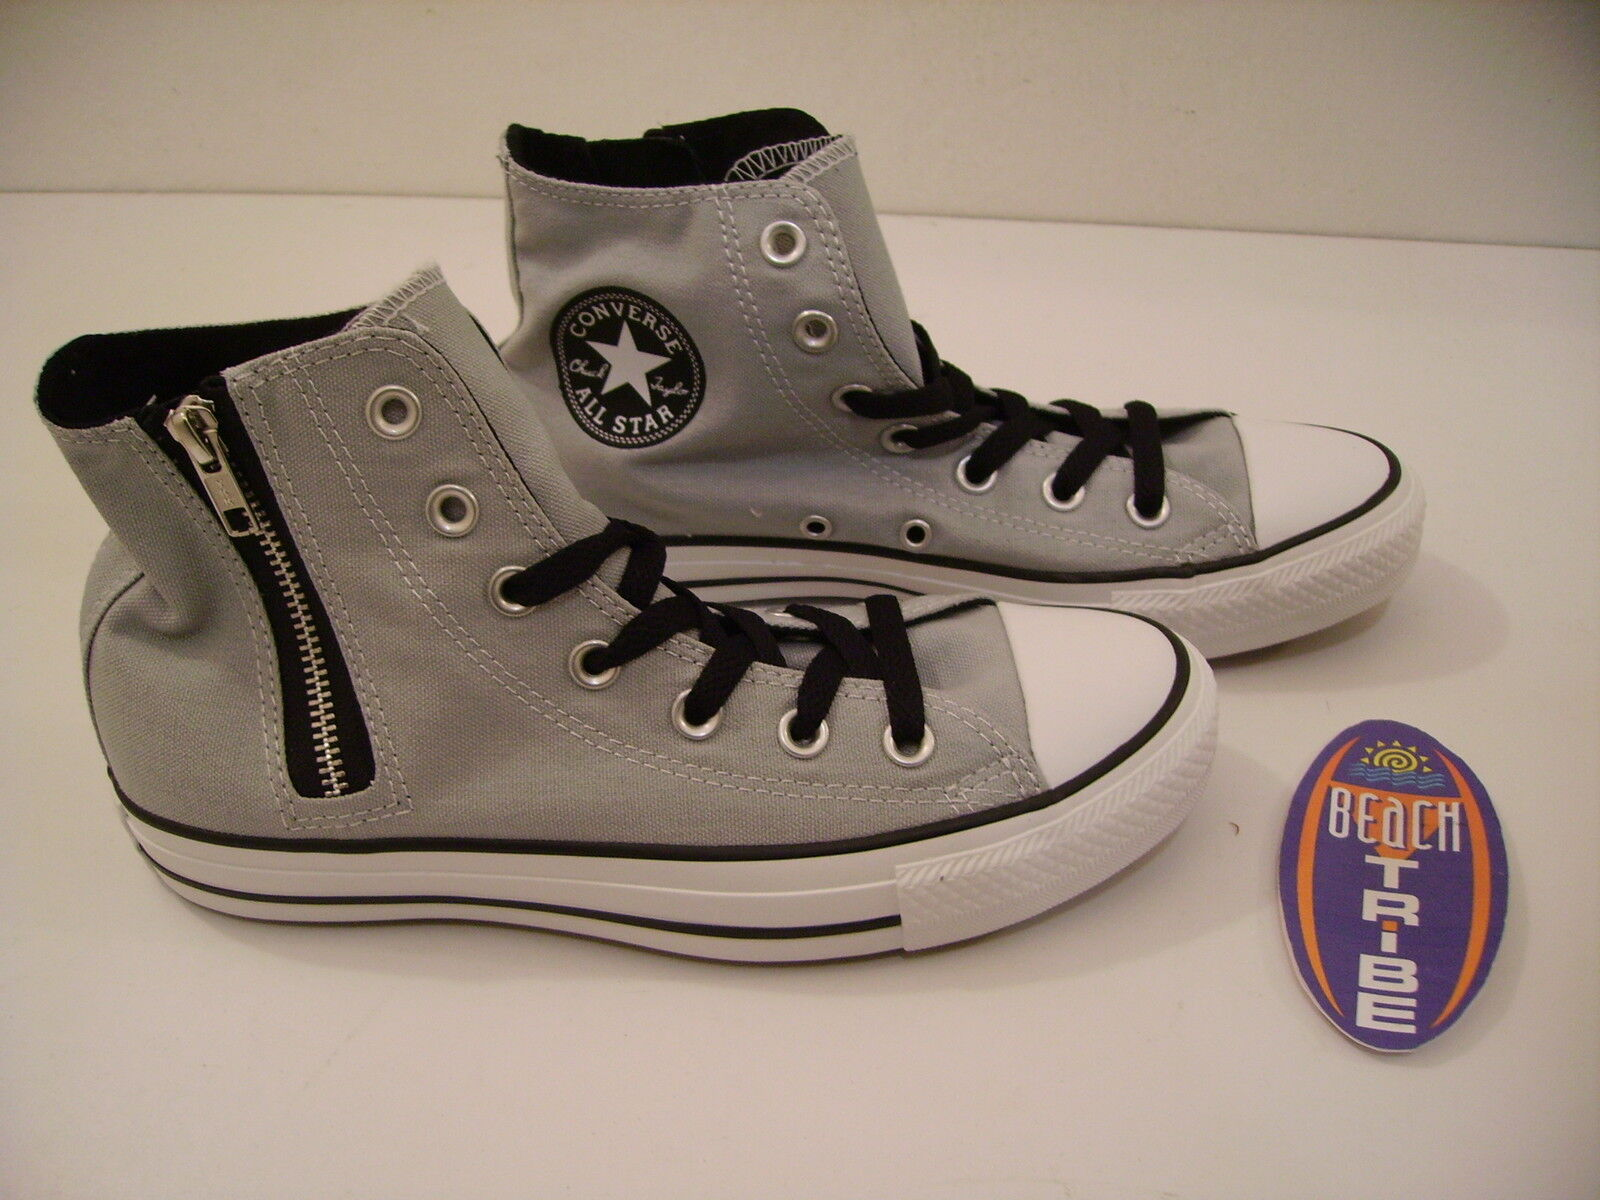 CONVERSE CHAUSSURES UNISEXE SNICKERS HAUTES 136578C ALL STAR MIRAGE GRIS GRIS 41